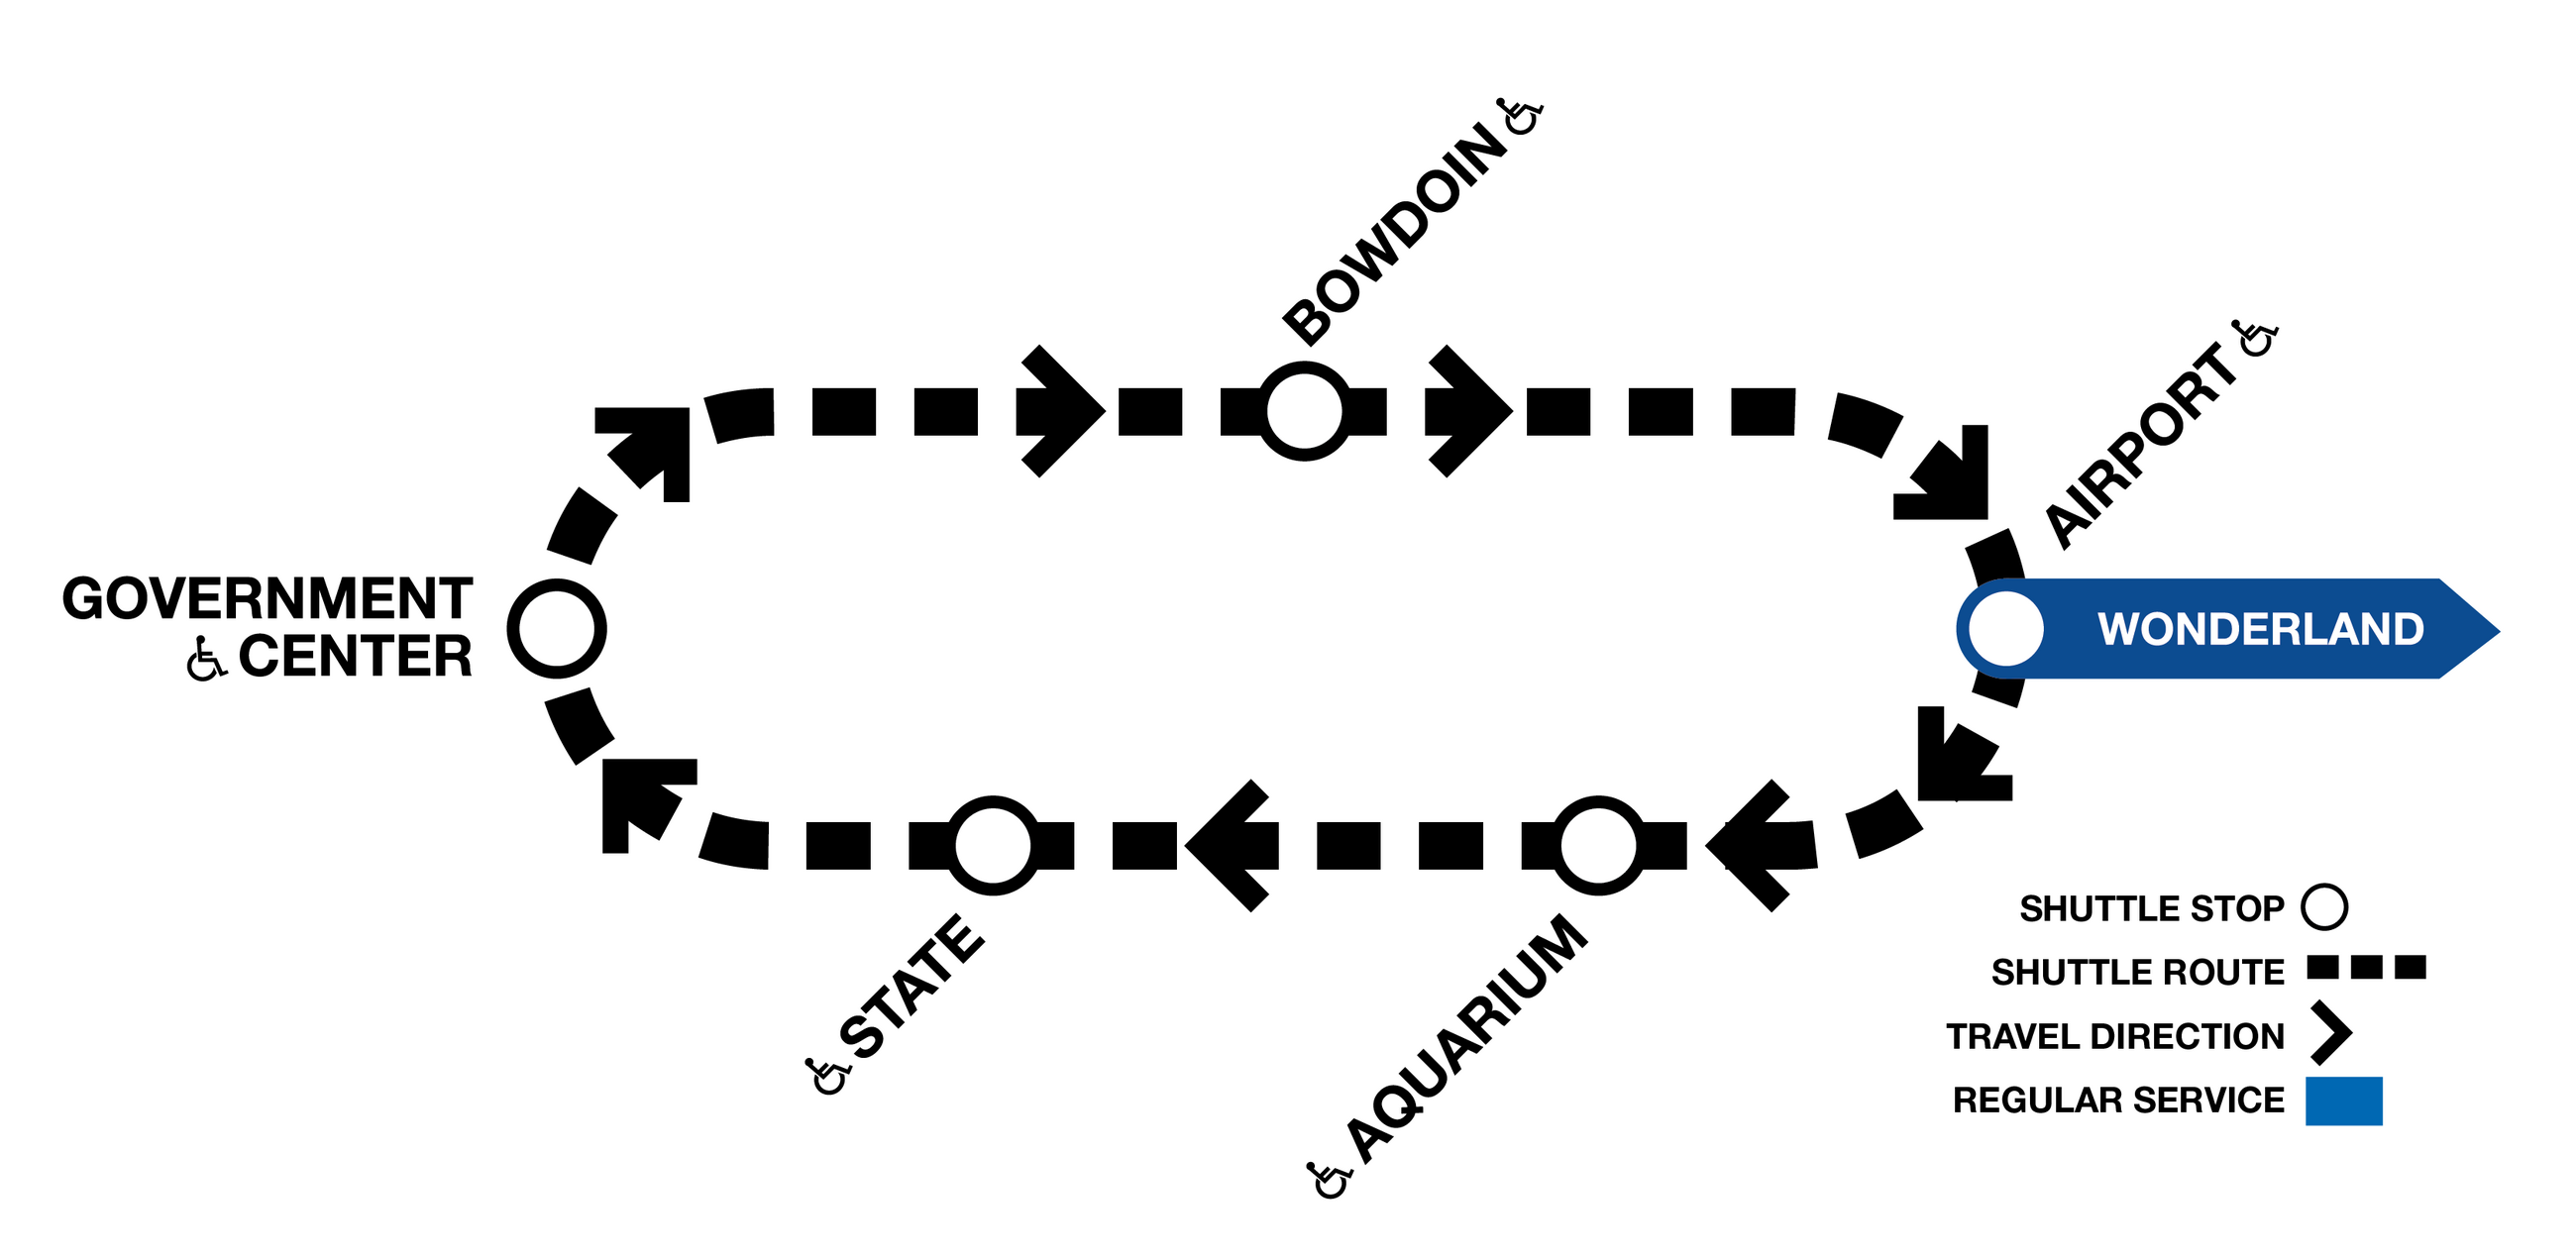 Express shuttle map between Airport and Government Center